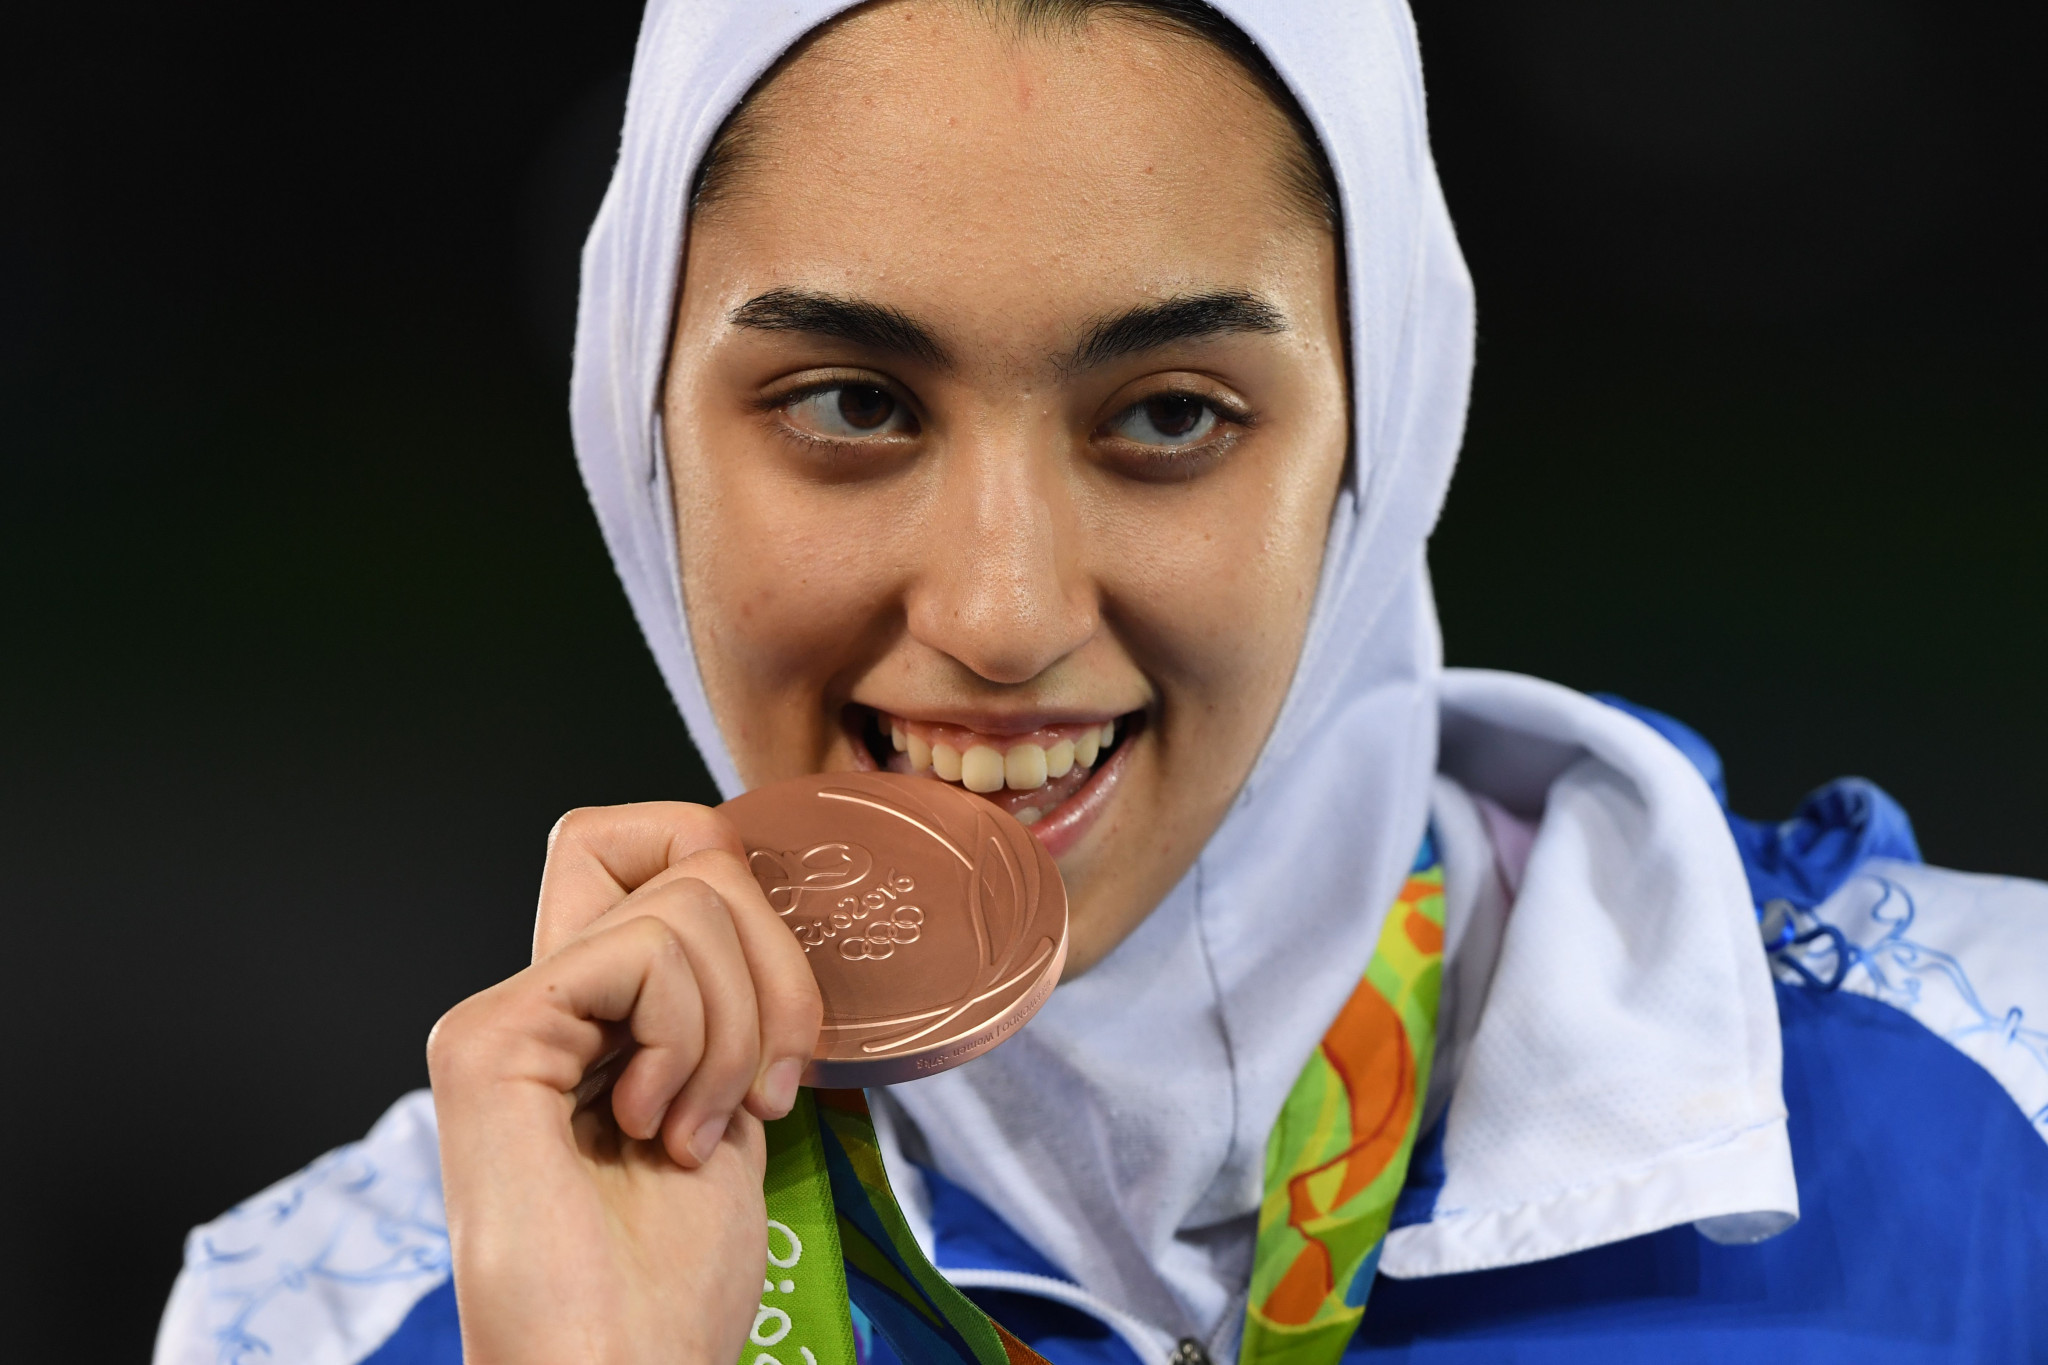 Taekwondo athlete Kimia Alizadeh has been announced as Iran's flagbearer for this year's Asian Games in Jakarta and Palembang ©Getty Images